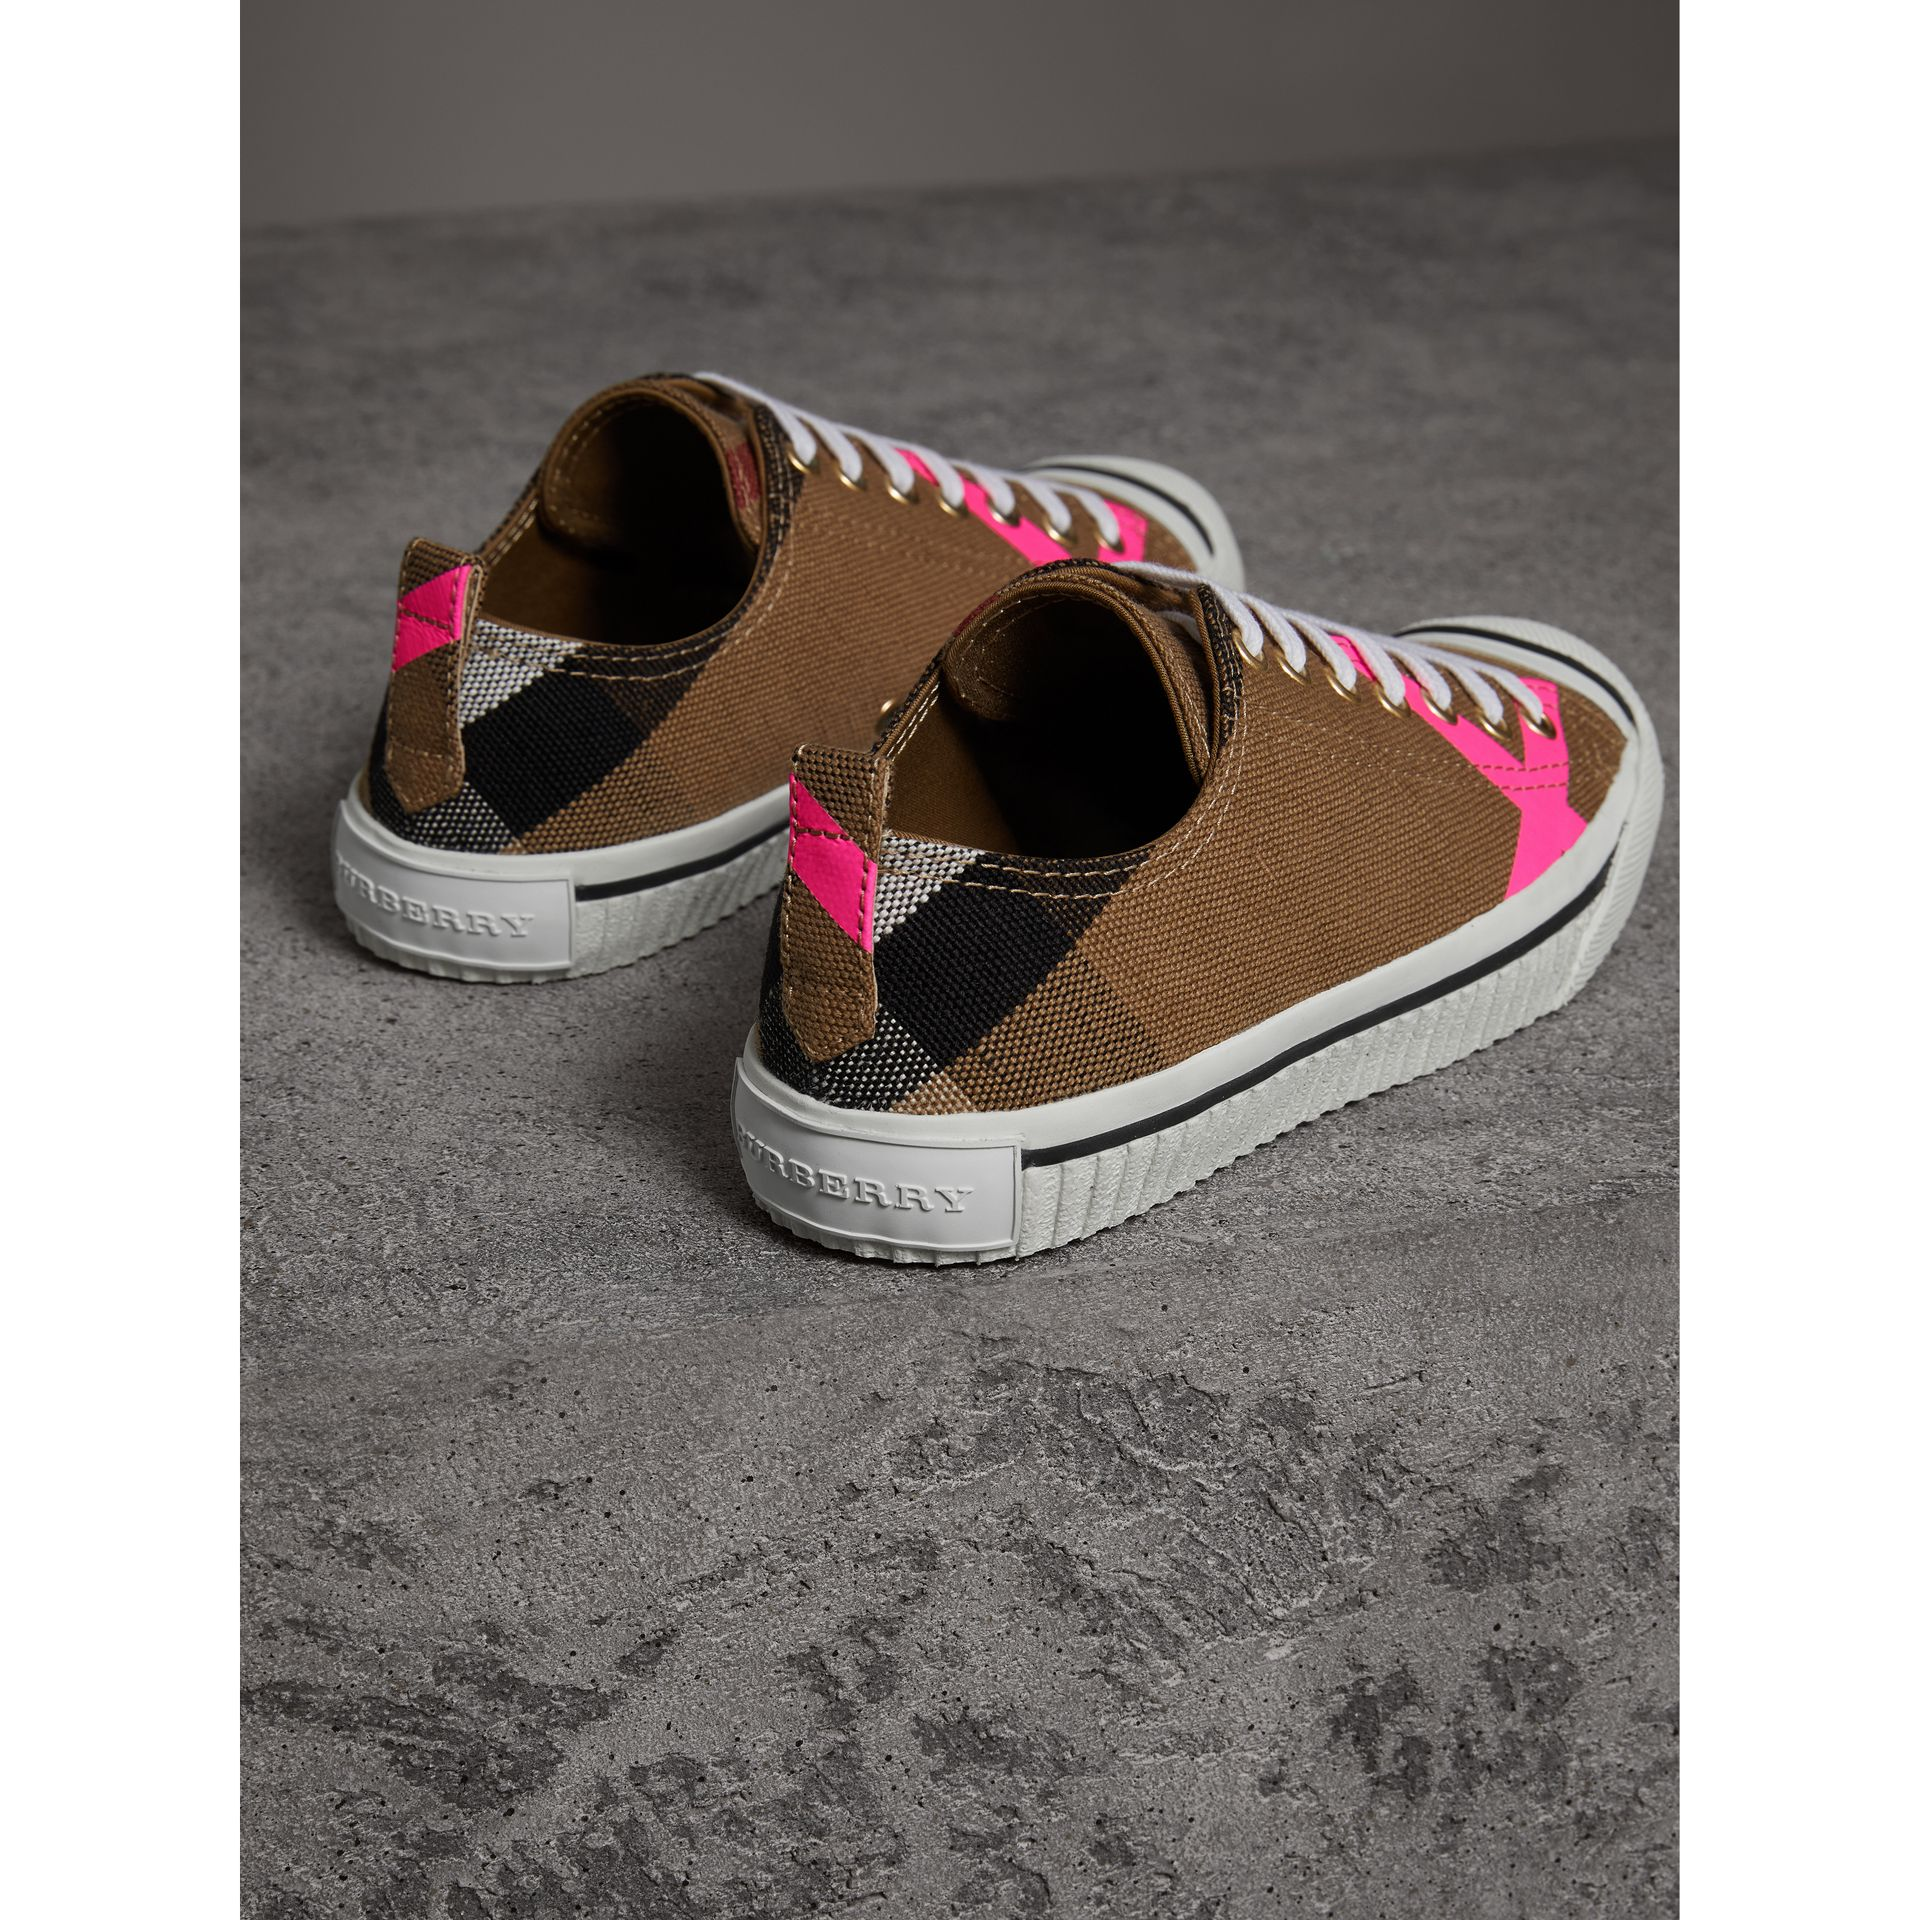 Canvas Check and Leather Sneakers in Classic/neon Pink - Women | Burberry - gallery image 2